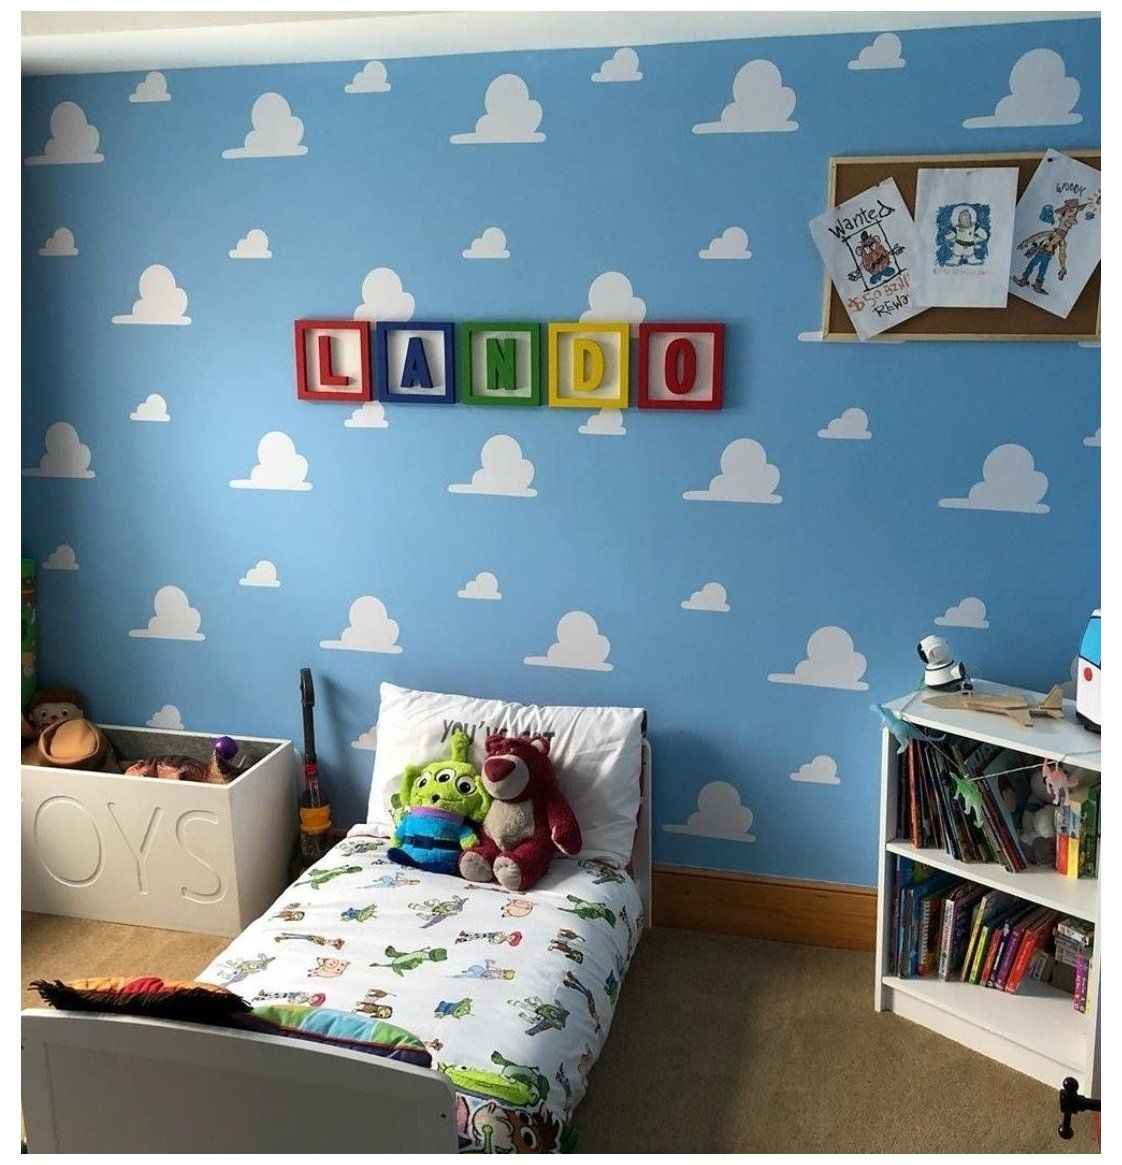 Kids Toy Story Themed Bedroom Ideas And Inspo Toy Story Bedroom Ideas Girls Toystorybedroomid Toddler Room Decor Toddler Boy Room Decor Toy Story Bedroom